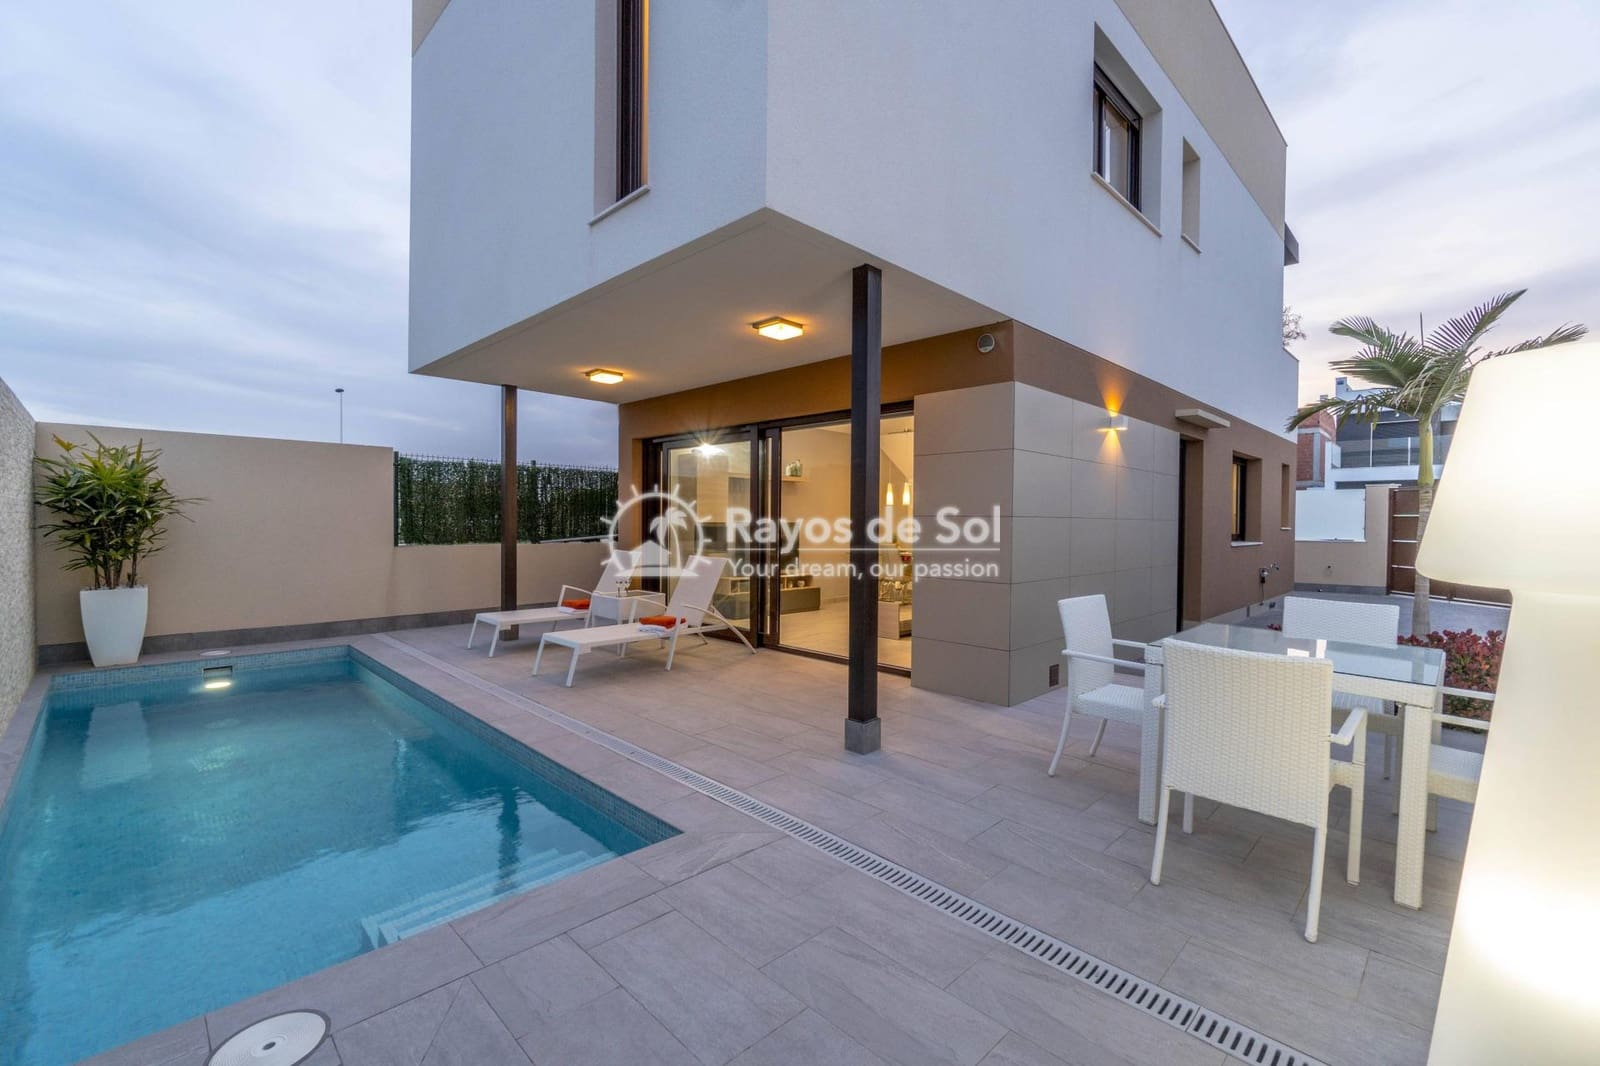 3 bedroom Villa for sale in San Pedro del Pinatar with pool - € 229,900 (Ref: 5394996)